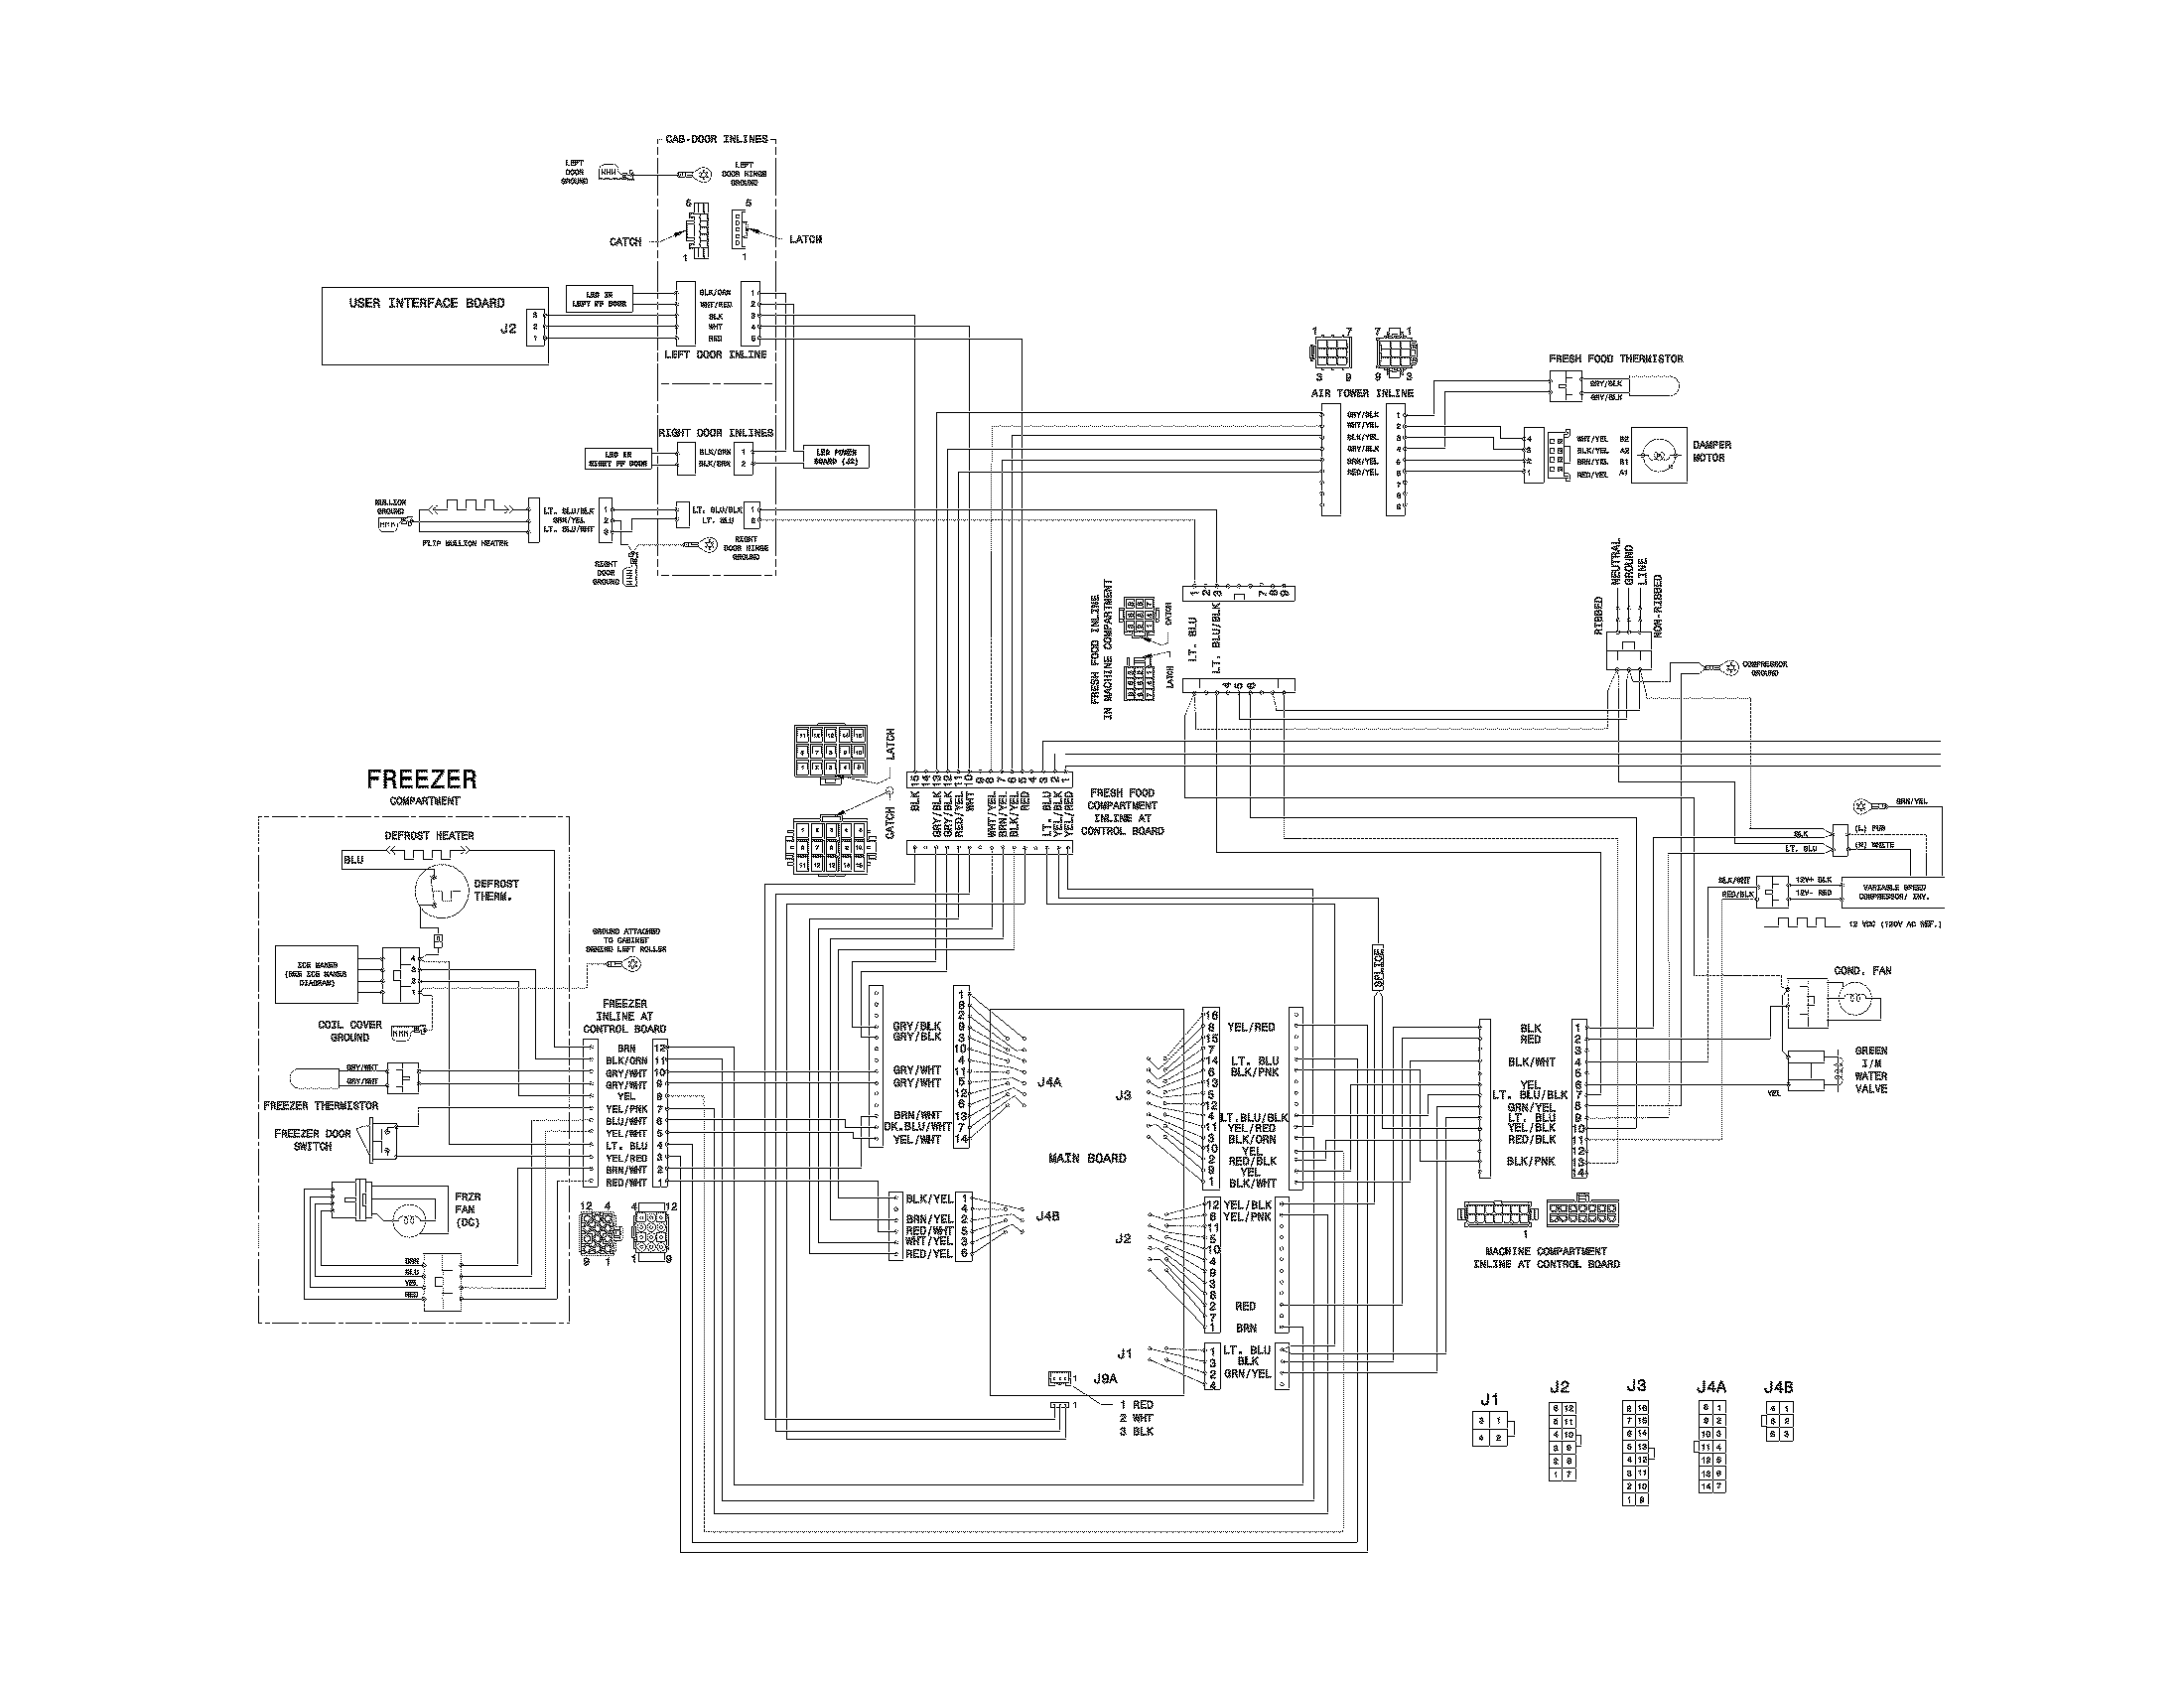 wiring diagram of refrigerator pbt gf30 for a dometic  the